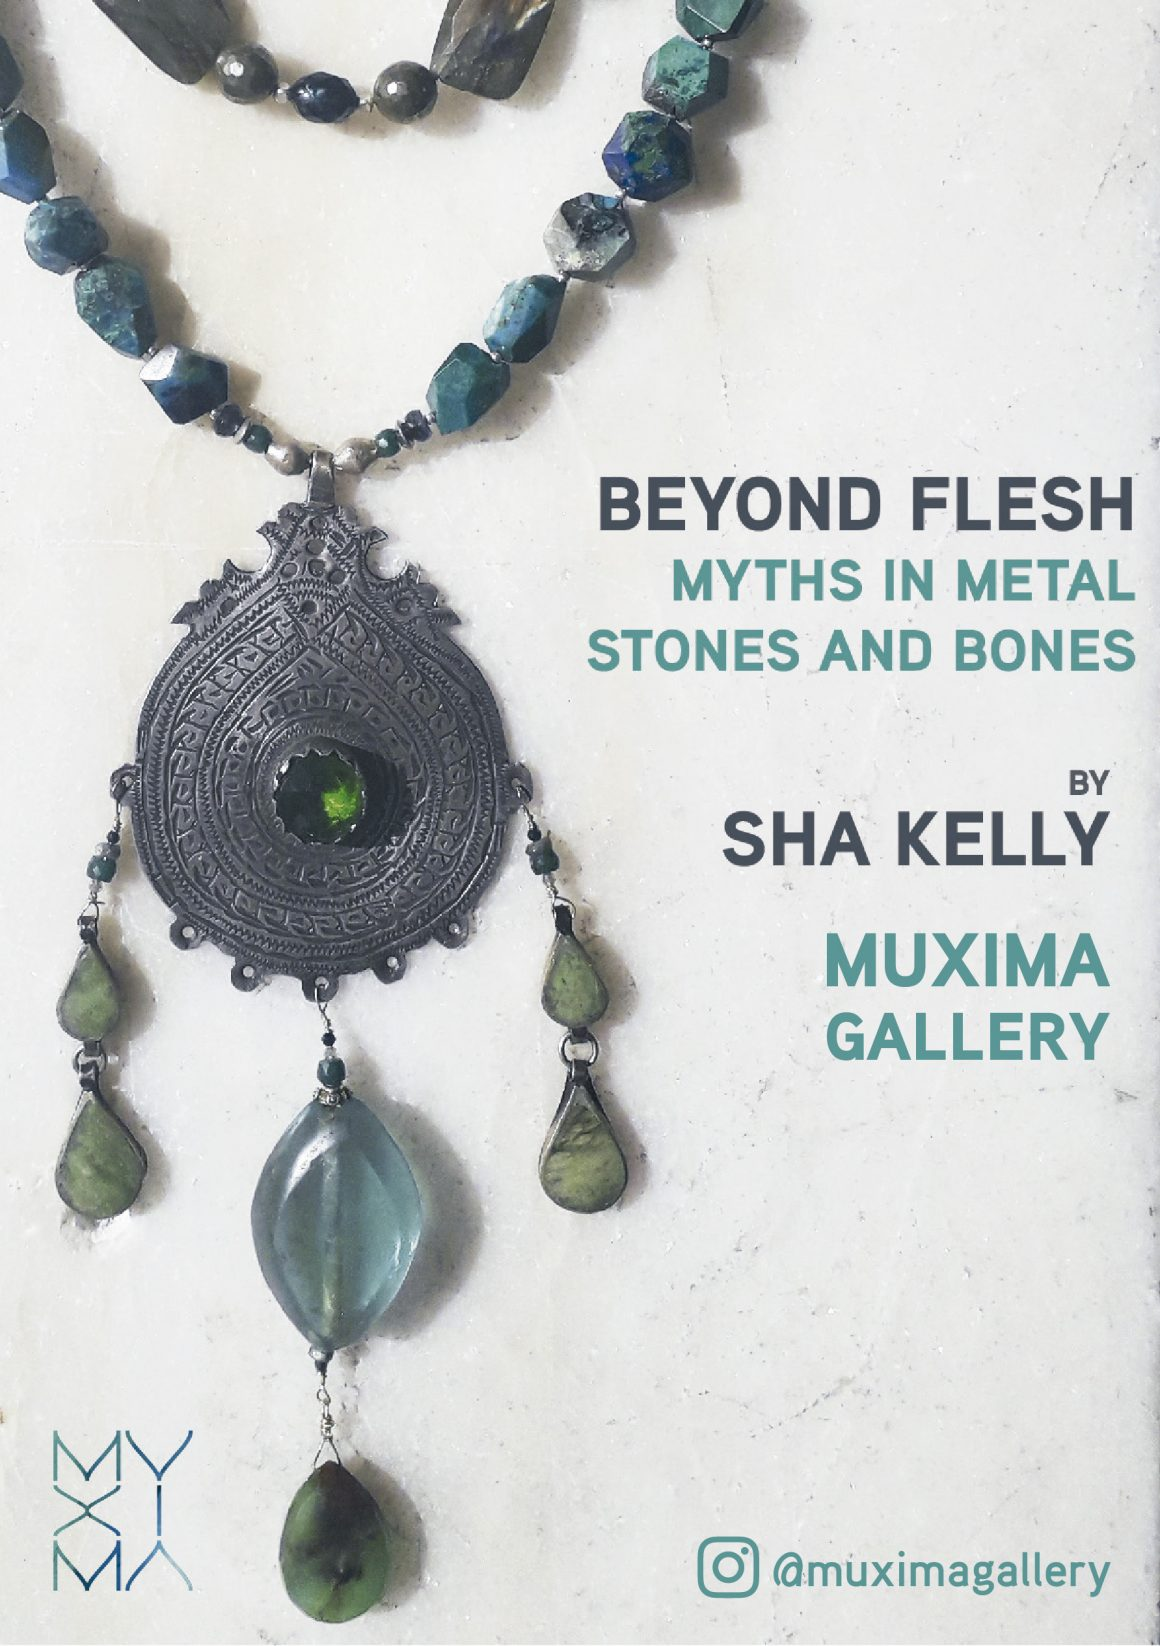 SHA KELLY – BEYOND FLESH: MYTHS IN METAL, STONES AND BONES